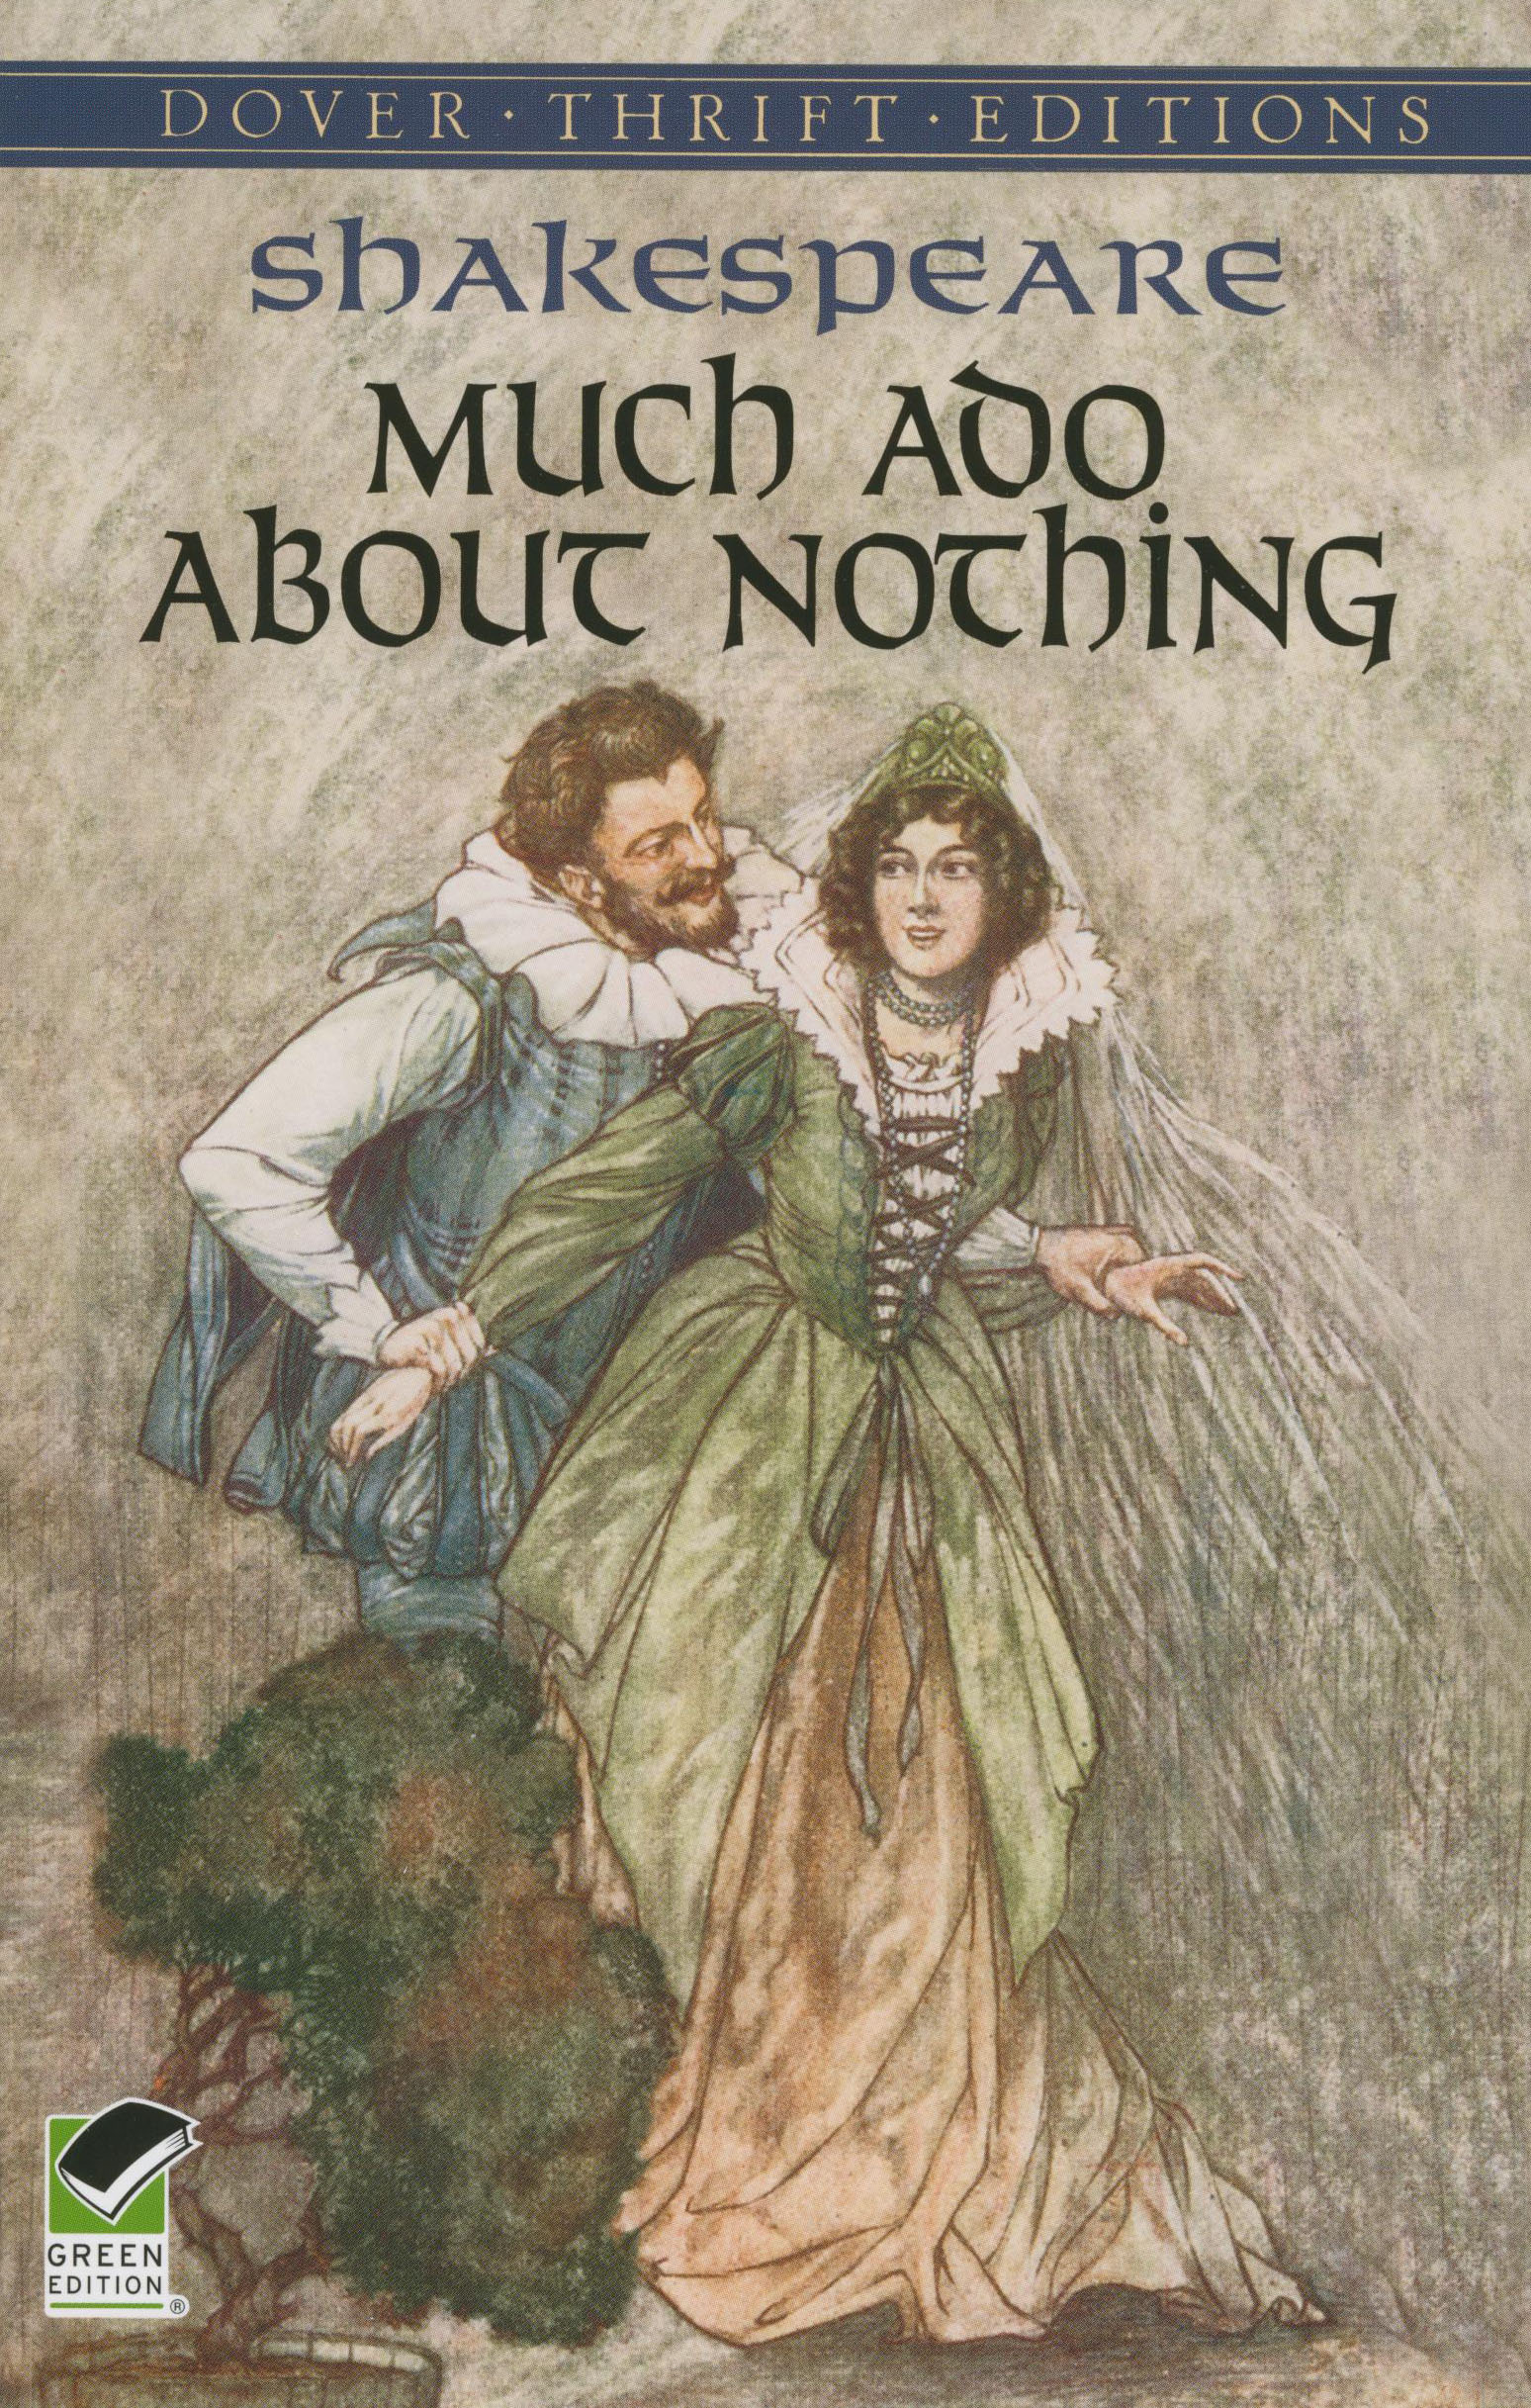 theme of love in much ado Much ado about nothing - themes overview there are many themes running through this comedy by shakespeare, including love, confusion and the theme of 'nothing' itself.